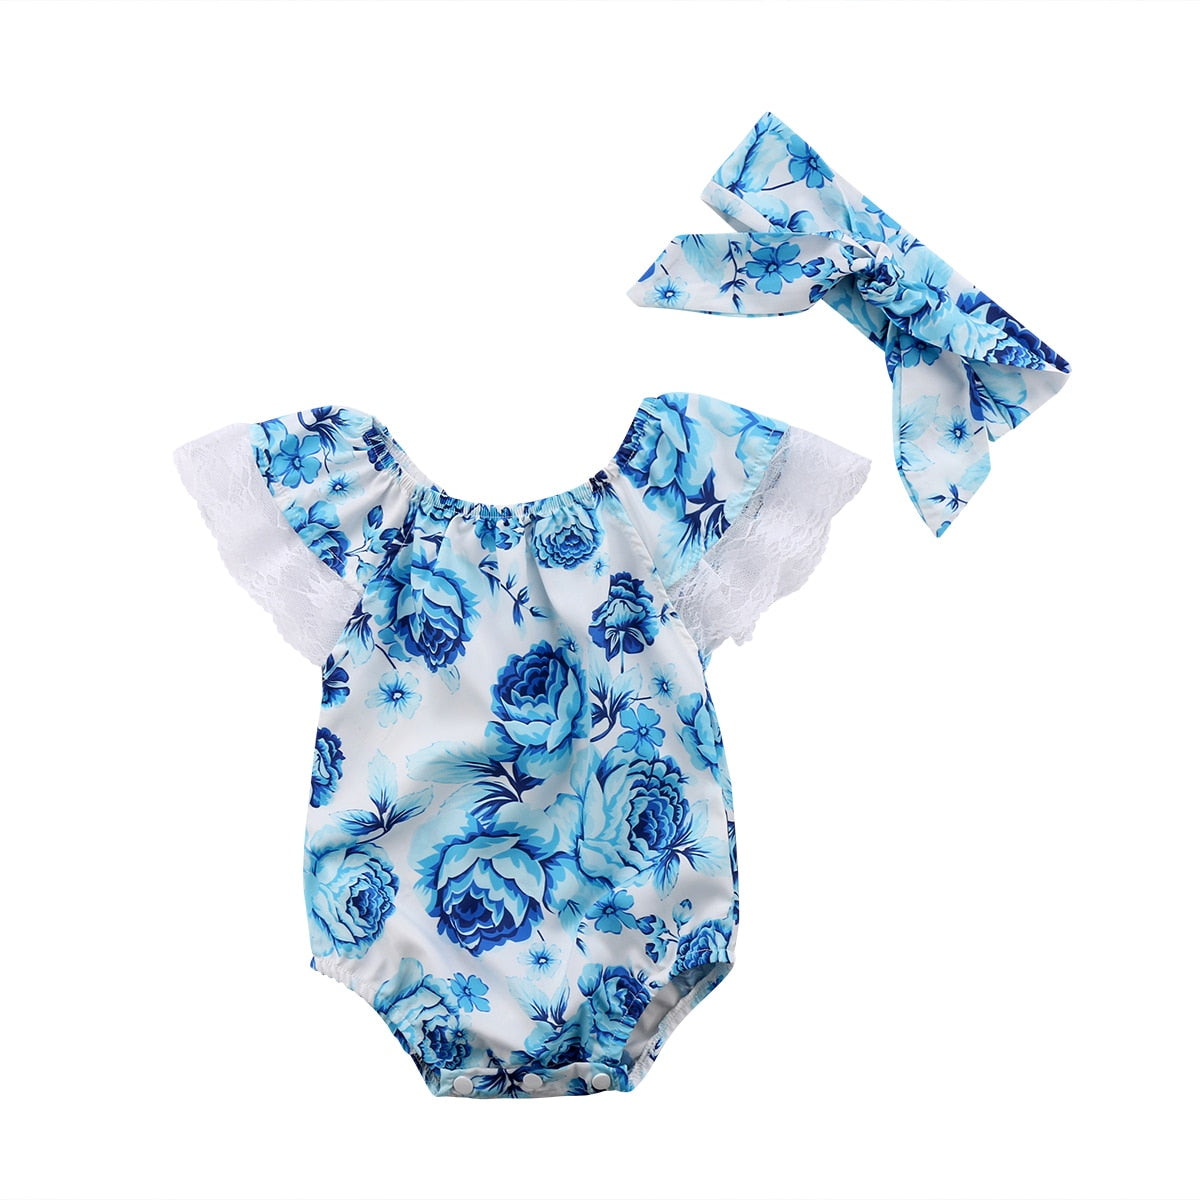 Newborn Baby Girls Lace Floral Romper Jumpsuit Outfits Sunsuit Summer Clothes Baby Clothing - Buy Babby